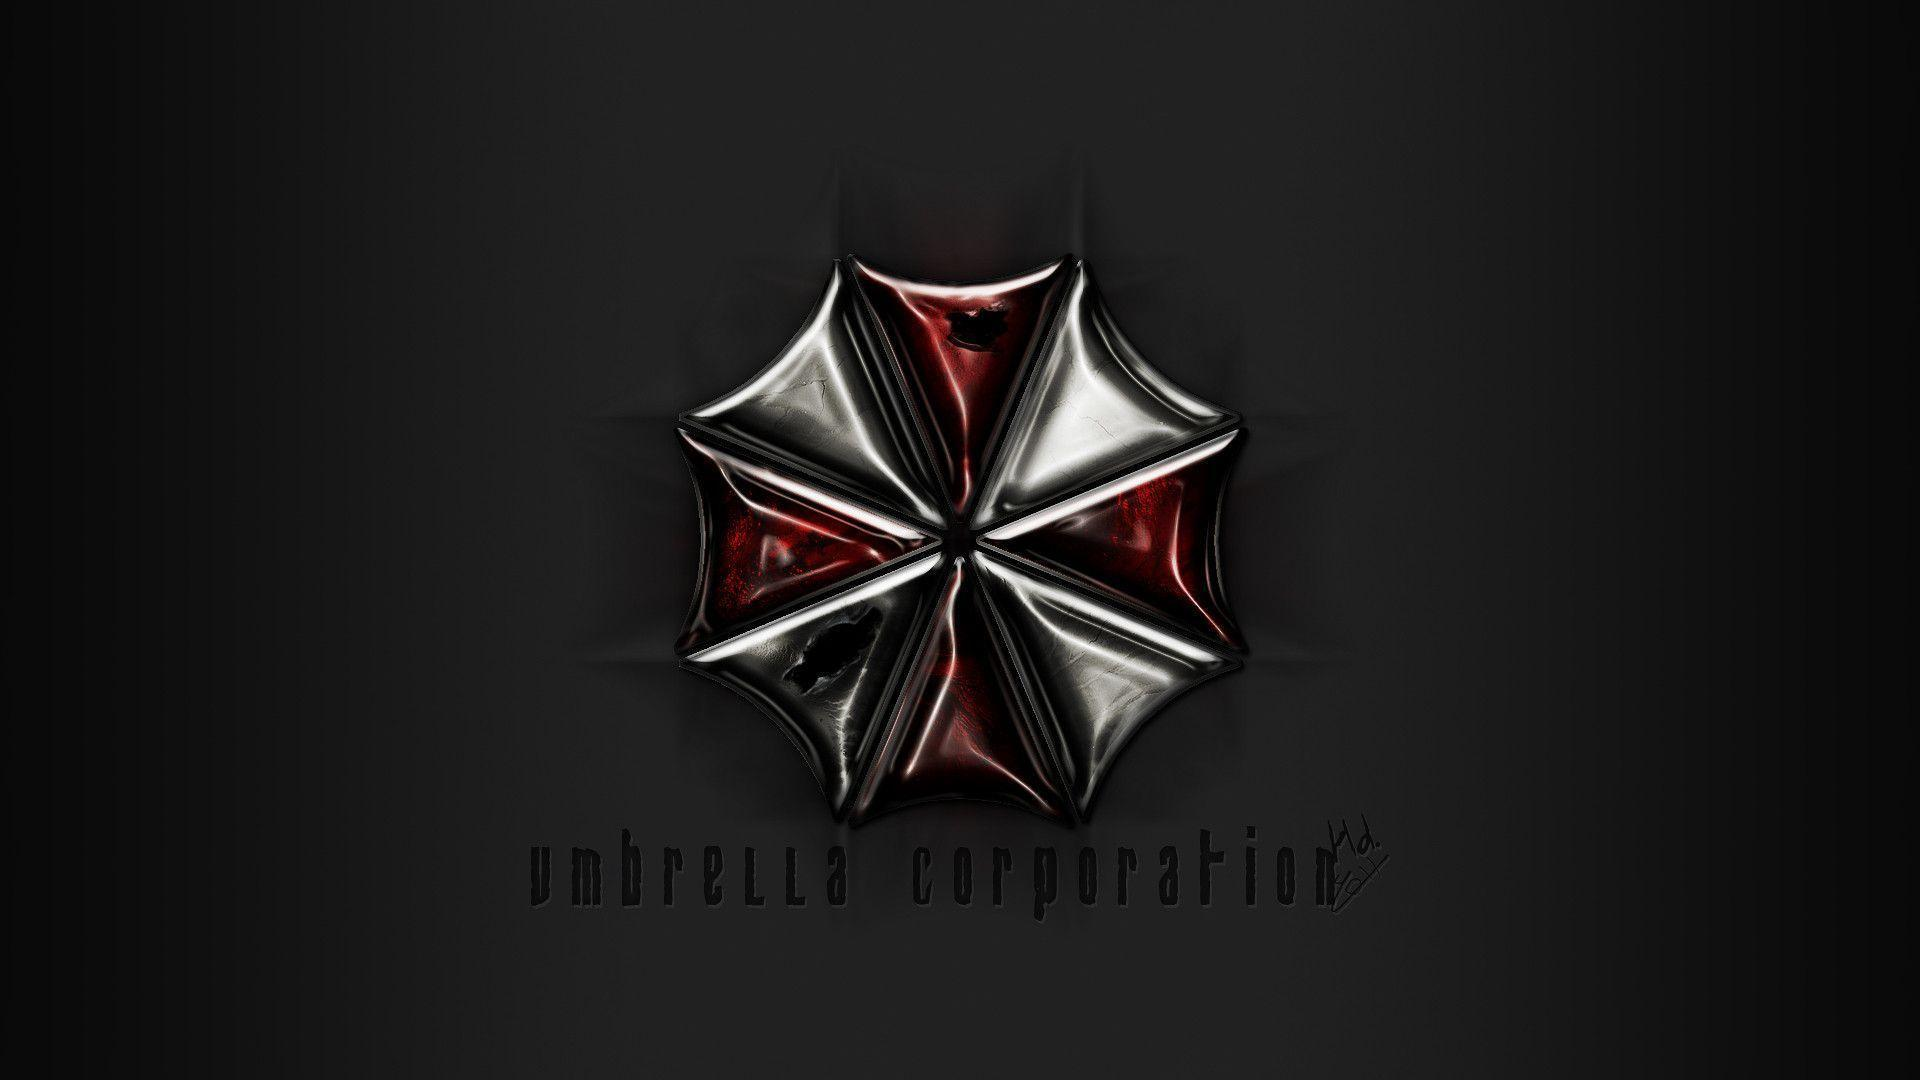 Umbrella corporation wallpapers wallpaper cave - Umbrella corporation wallpaper hd 1366x768 ...